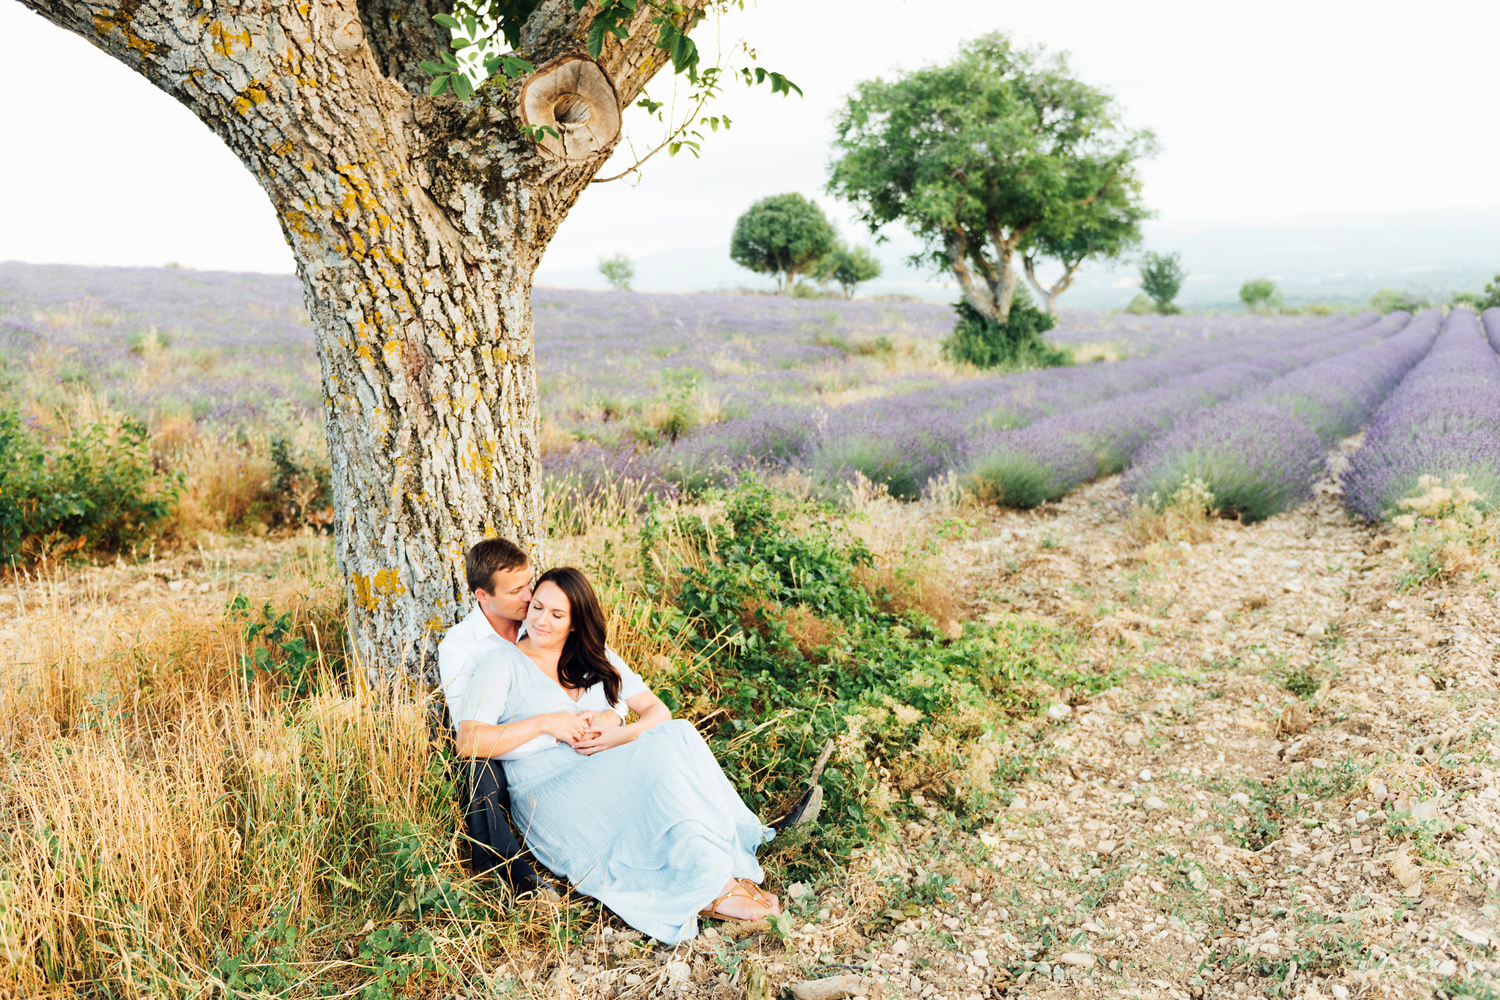 006-katie-mitchell-provence-wedding-portrait-engagement-photographer-south-of-france.jpg